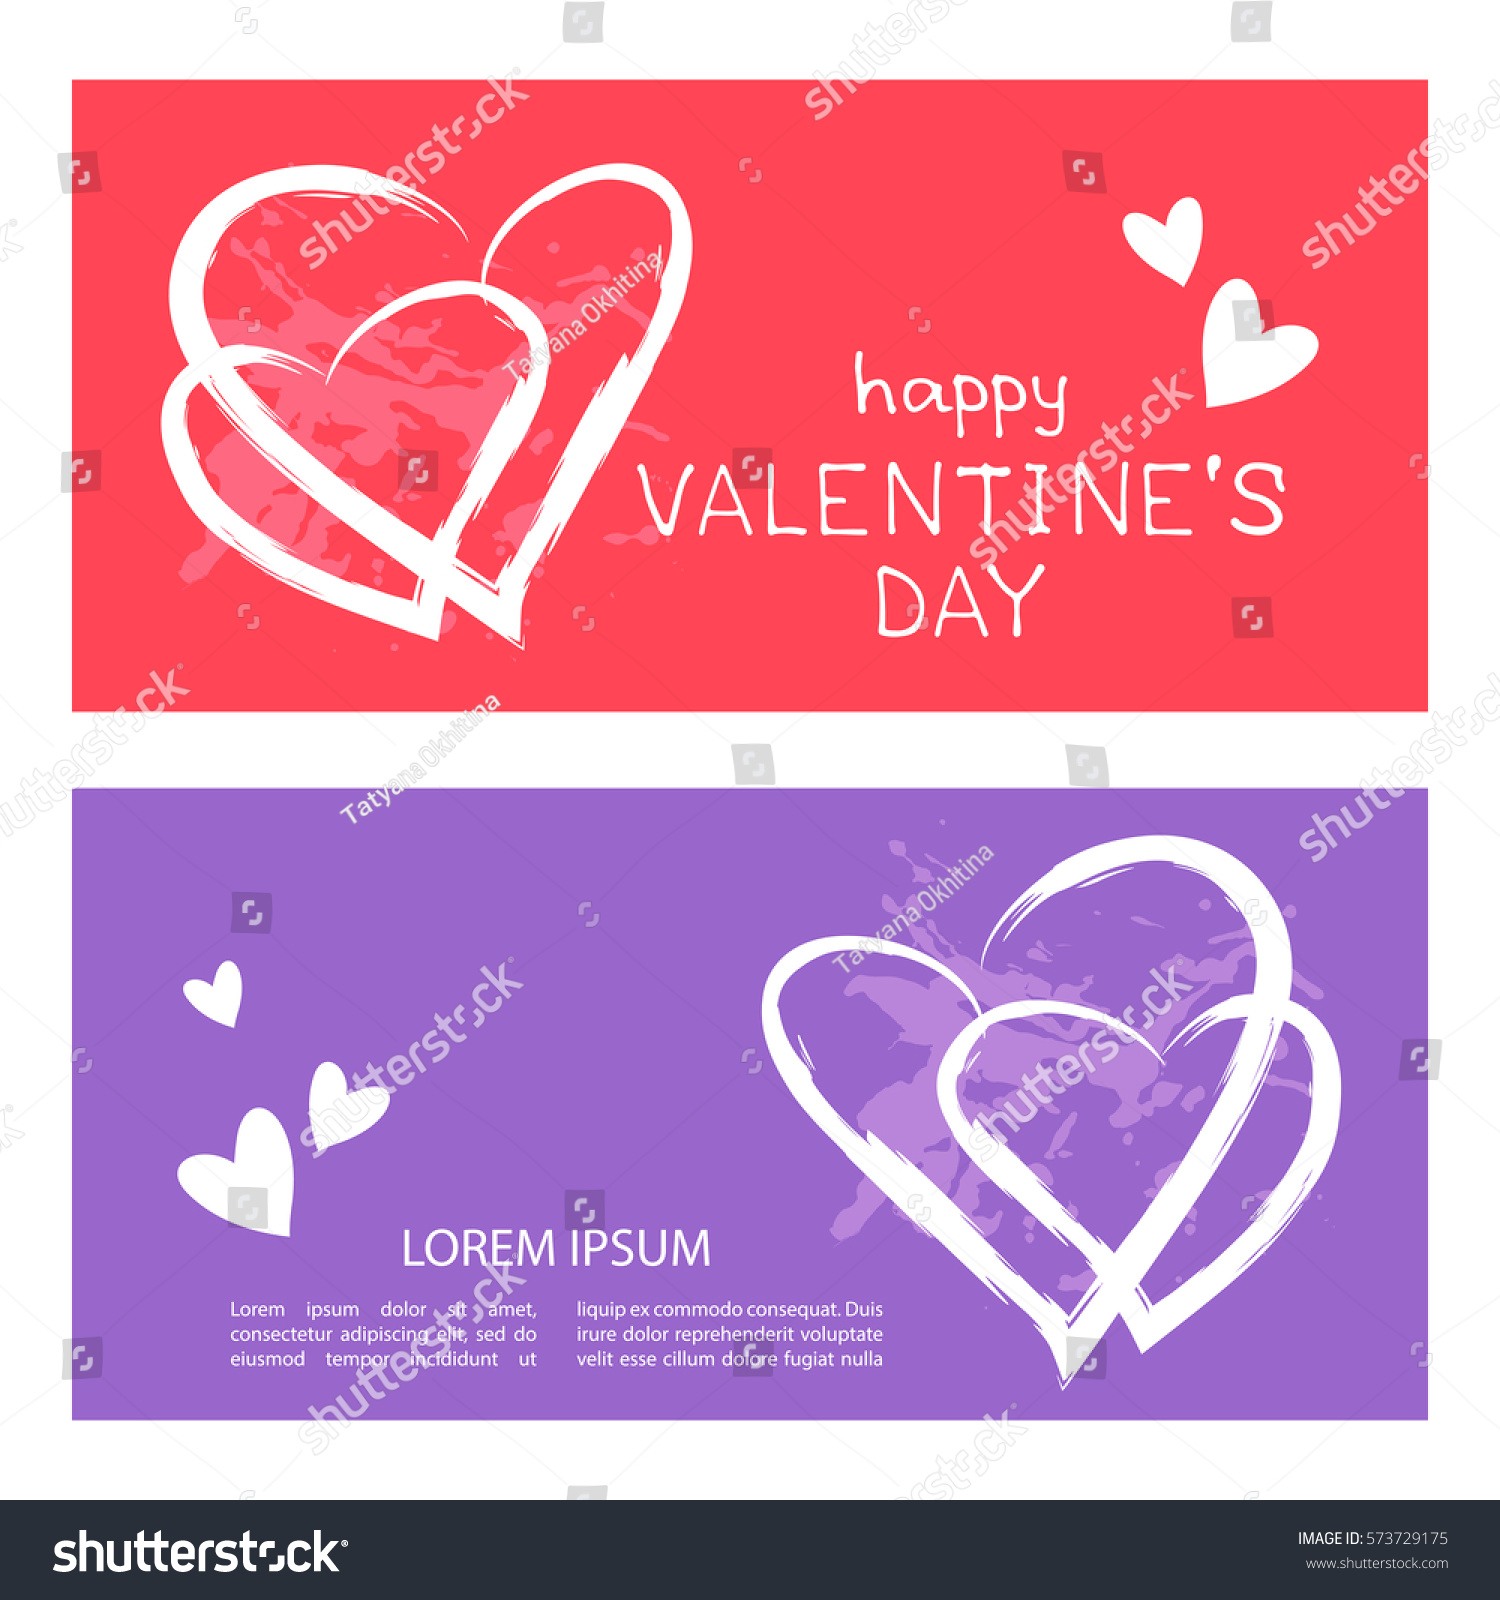 Templates Hearts Text Frames Valentines Day Stock Vector 573729175 ...